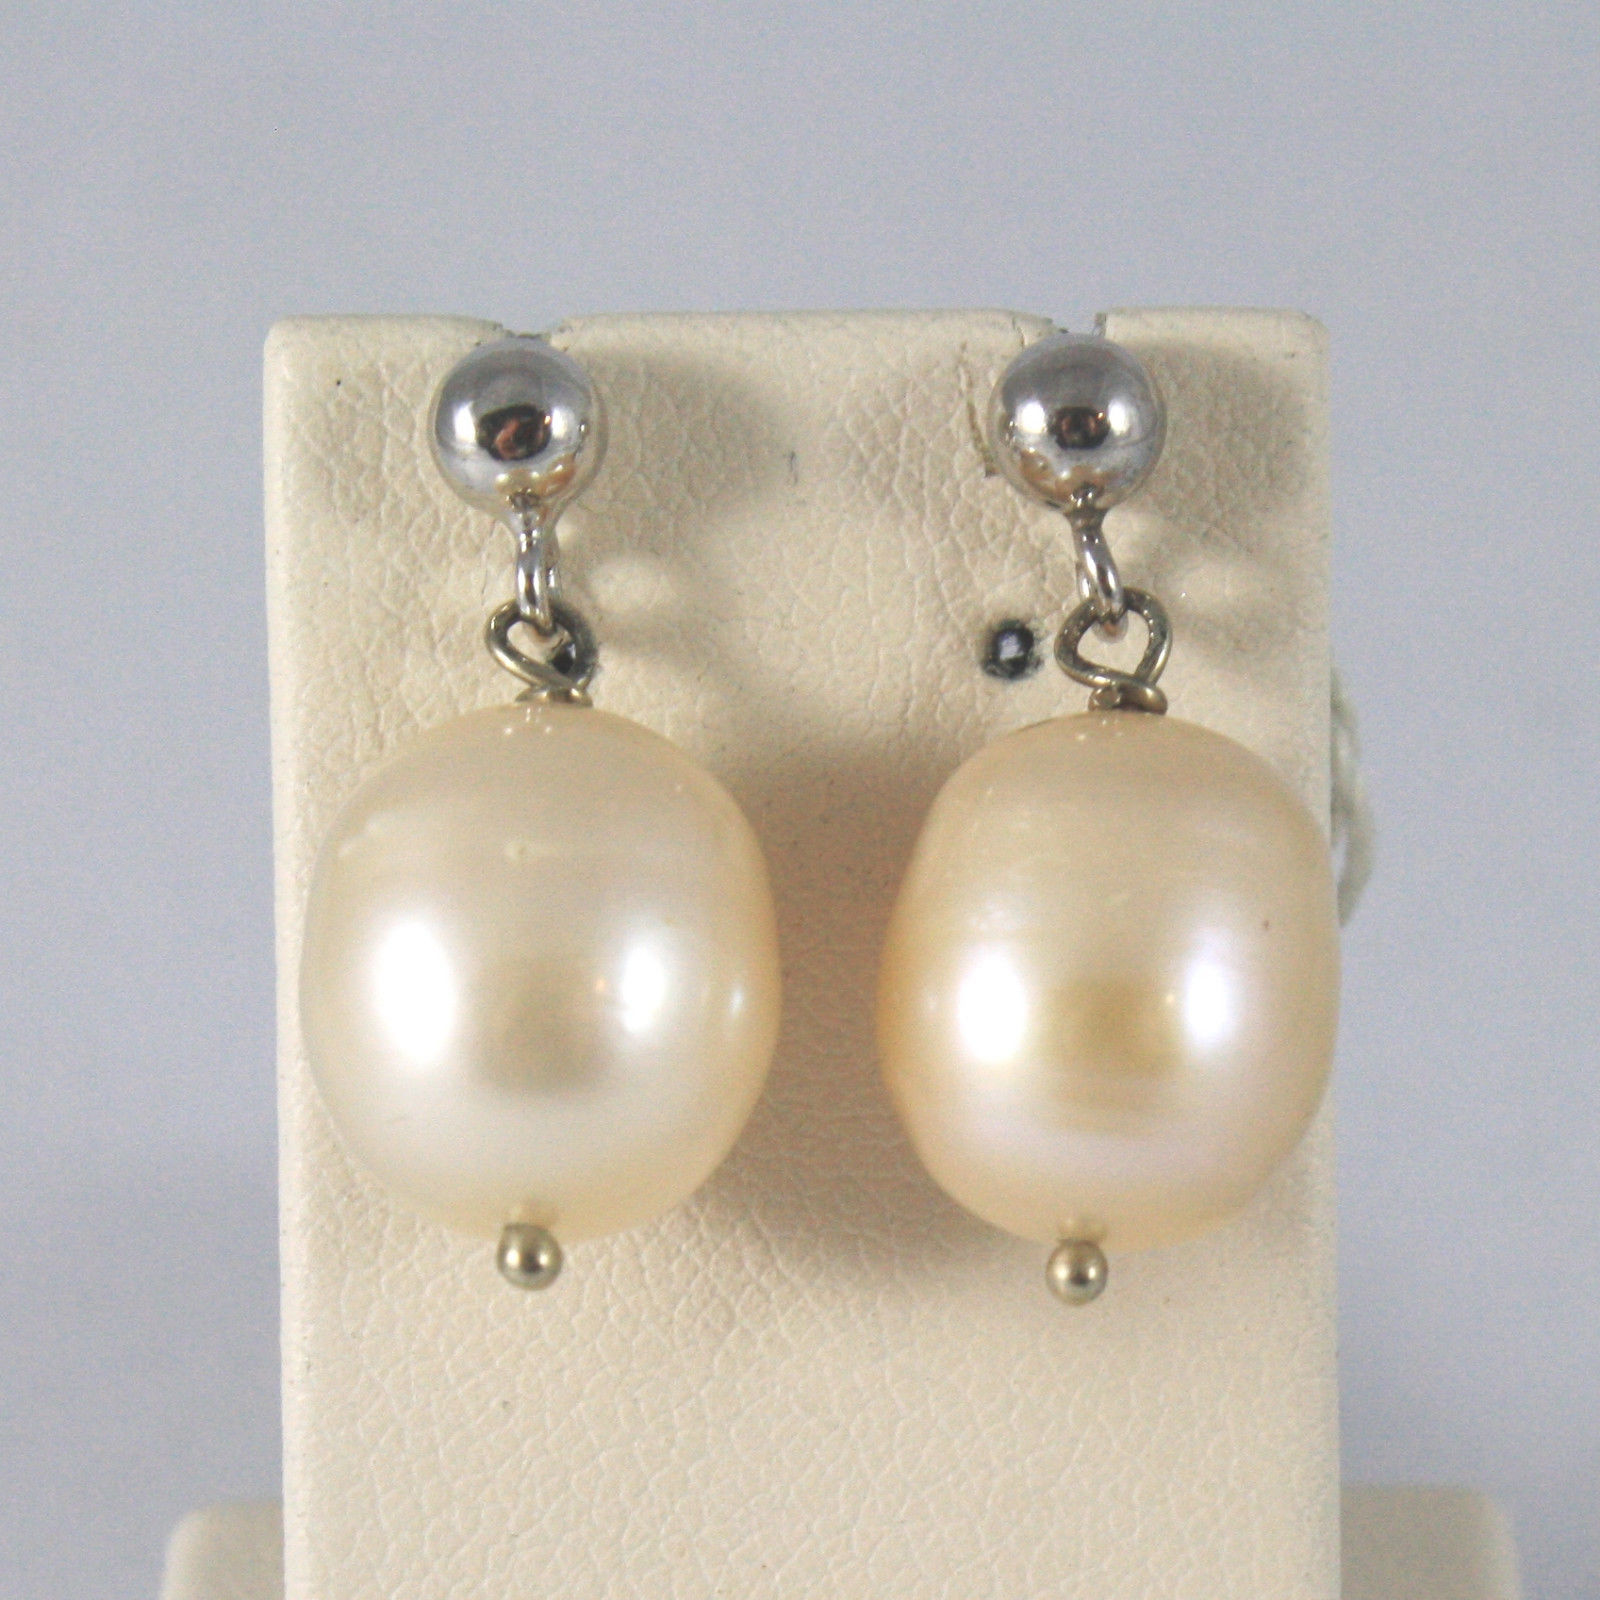 SOLID 18K WHITE GOLD EARRINGS, WITH PEARLS, LENGTH 0,87 INCHES, MADE IN ITALY.